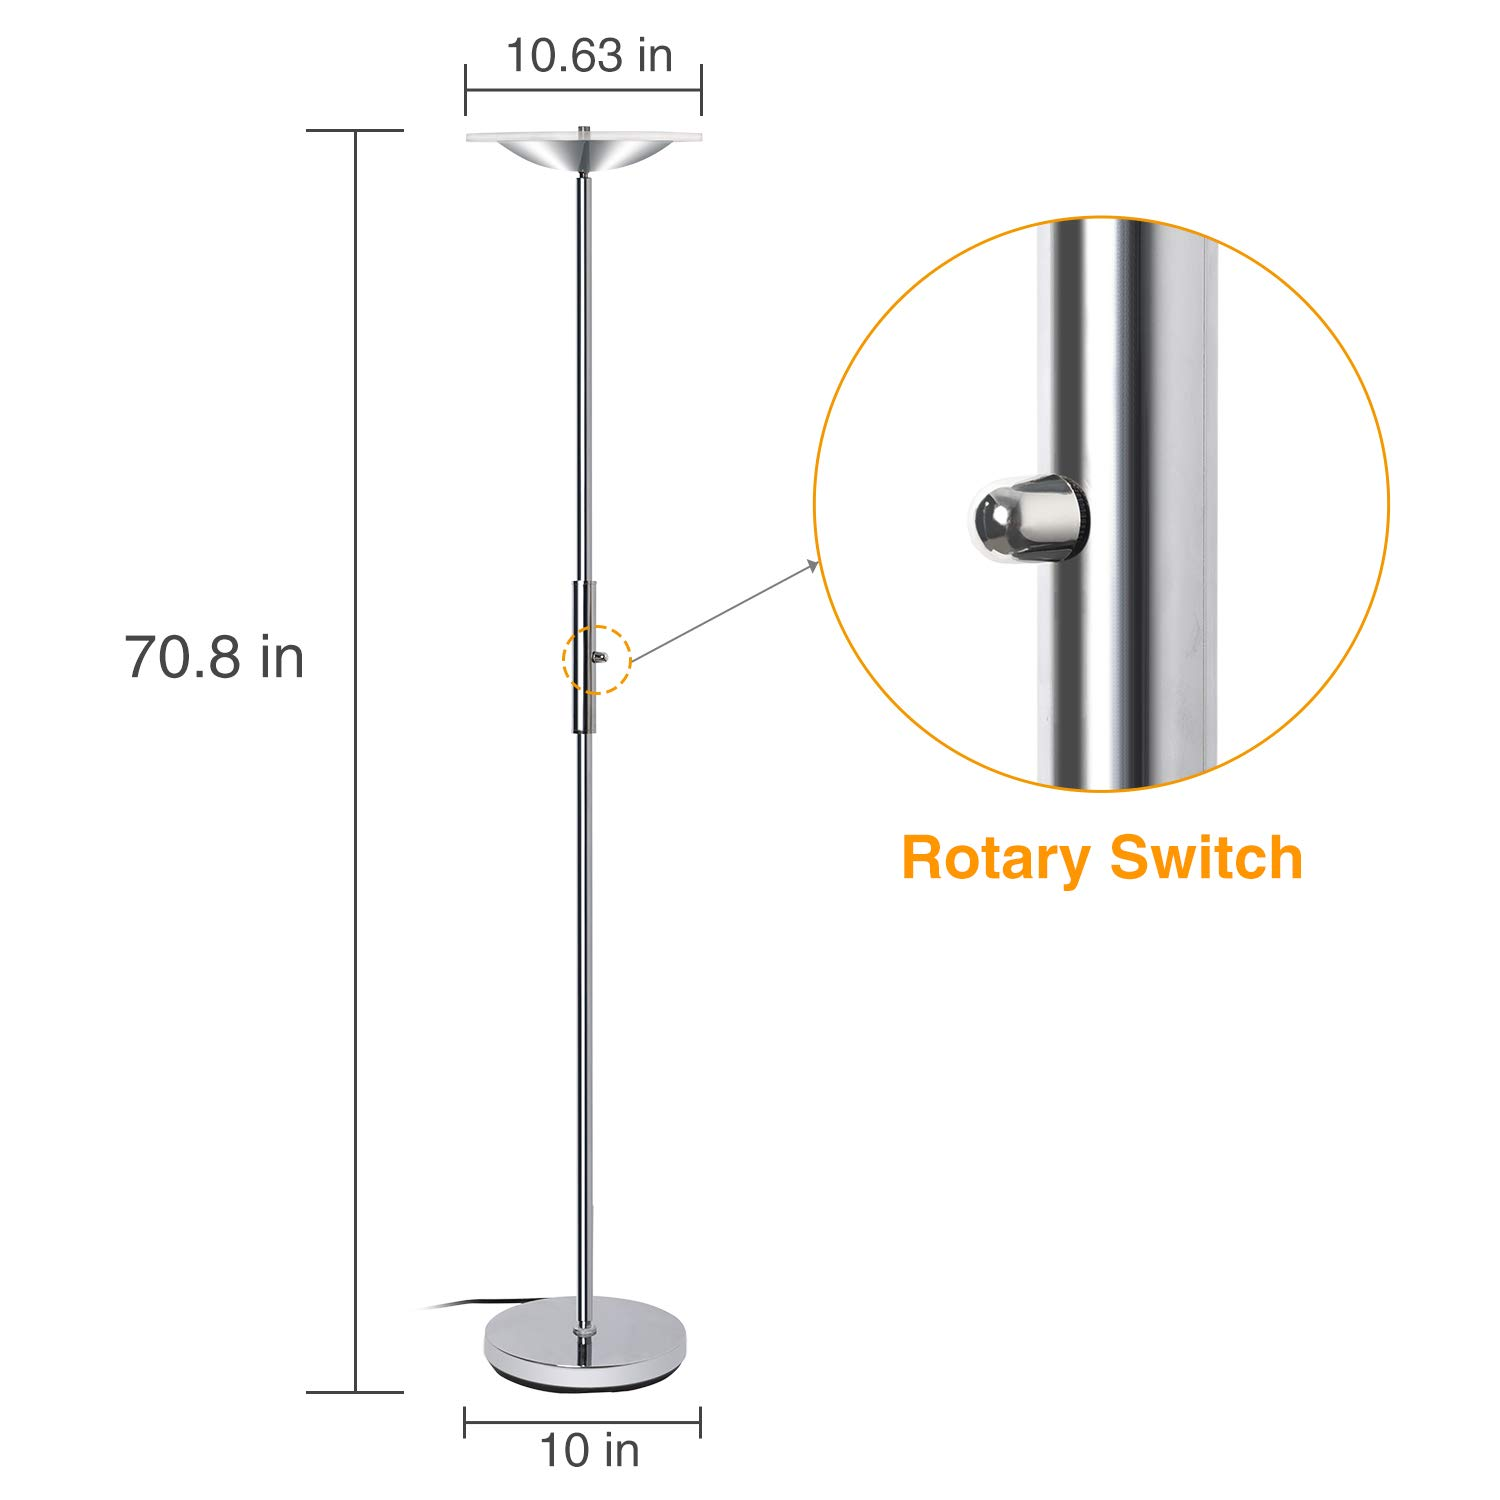 LED Torchiere Floor Lamp, Sunllipe Super Bright 18W Dimmable Uplight Adjustable Floor Lamp, Modern 70.5'' Tall Standing Pole Light, Compatible with Wall Switch for Reading, Office, Living Room, Bedroom by sunllipe (Image #6)